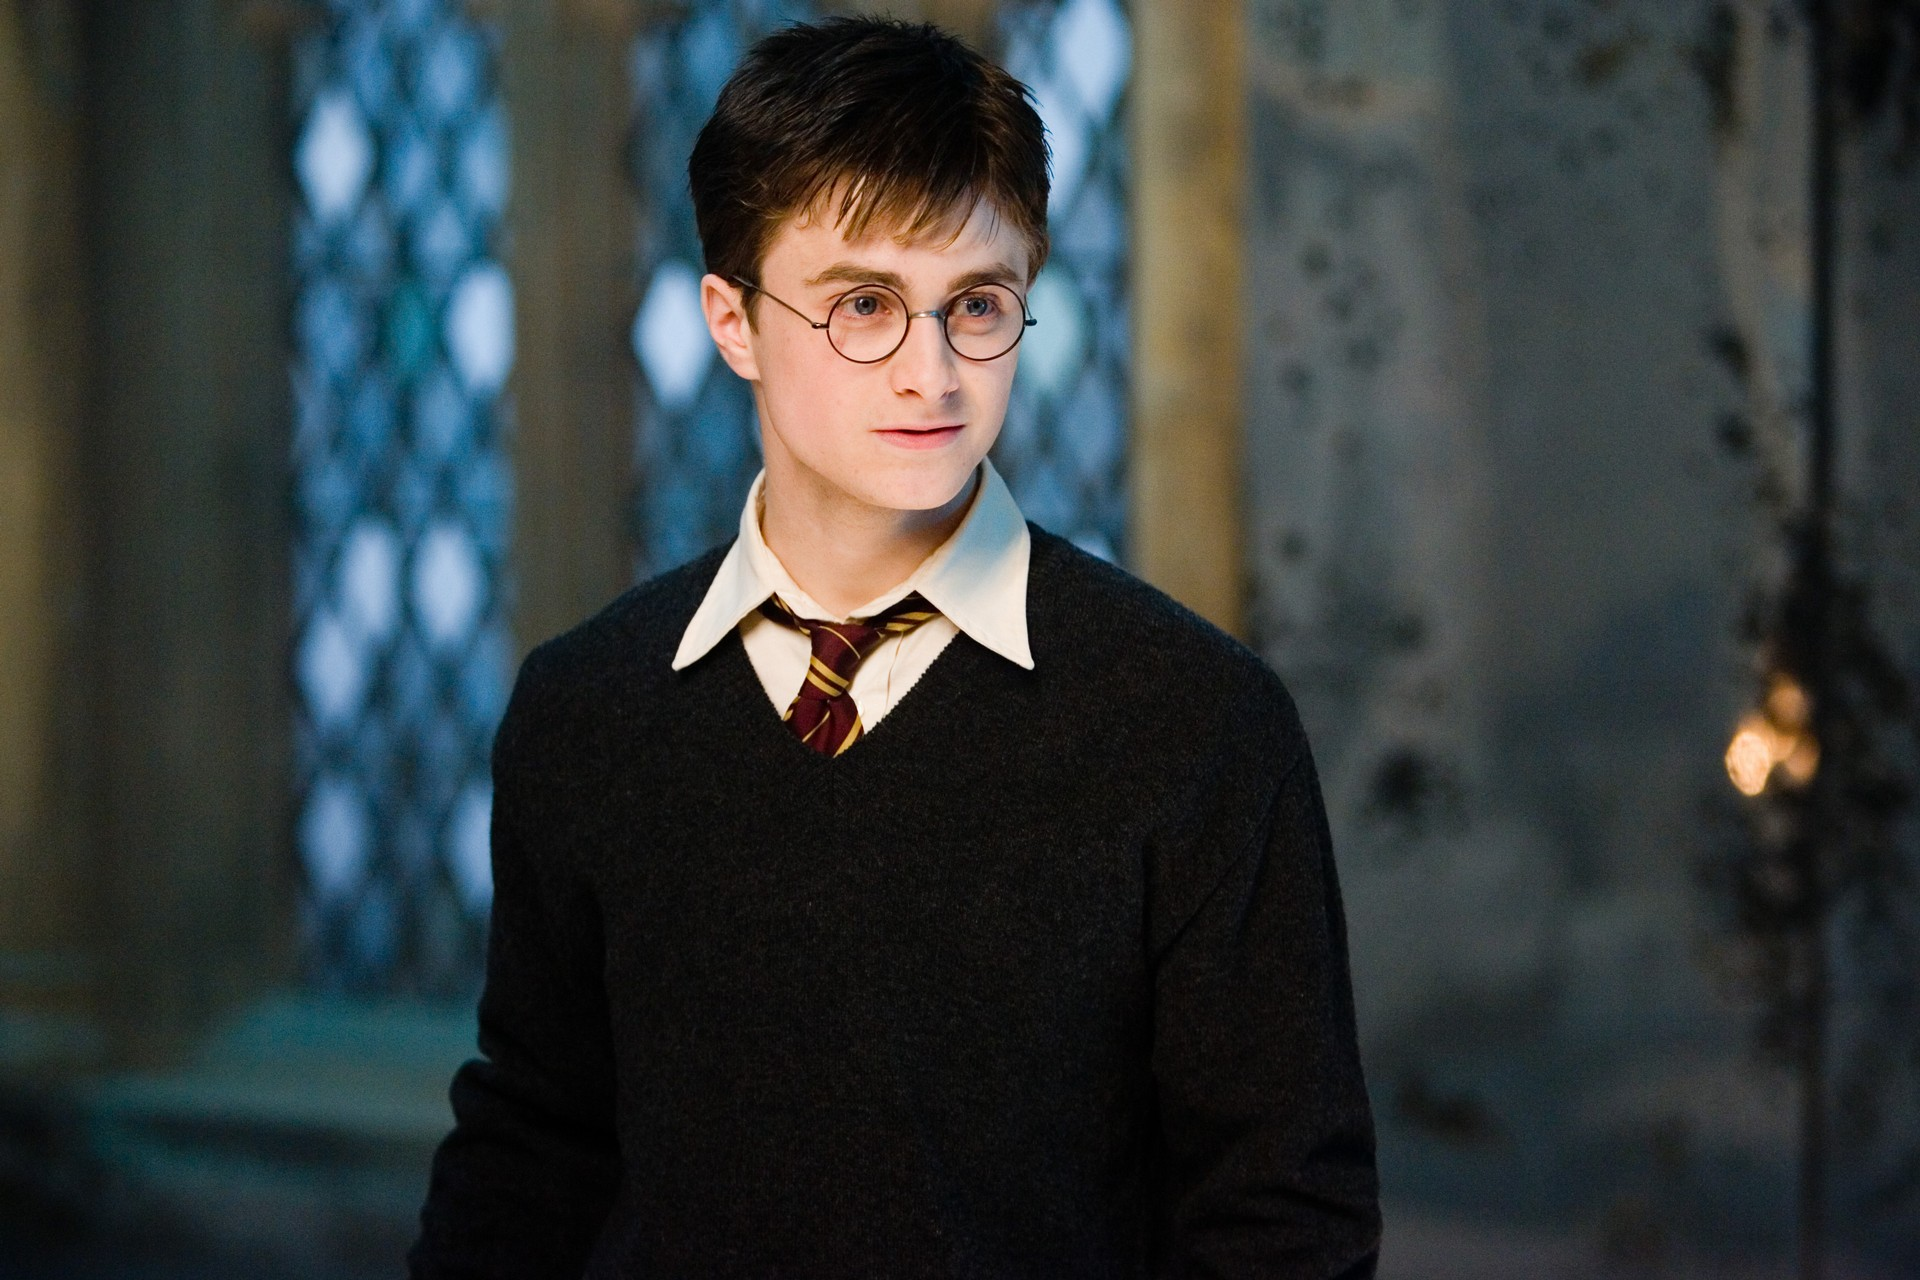 This Tumblr user just reimagined Harry Potter as a squib